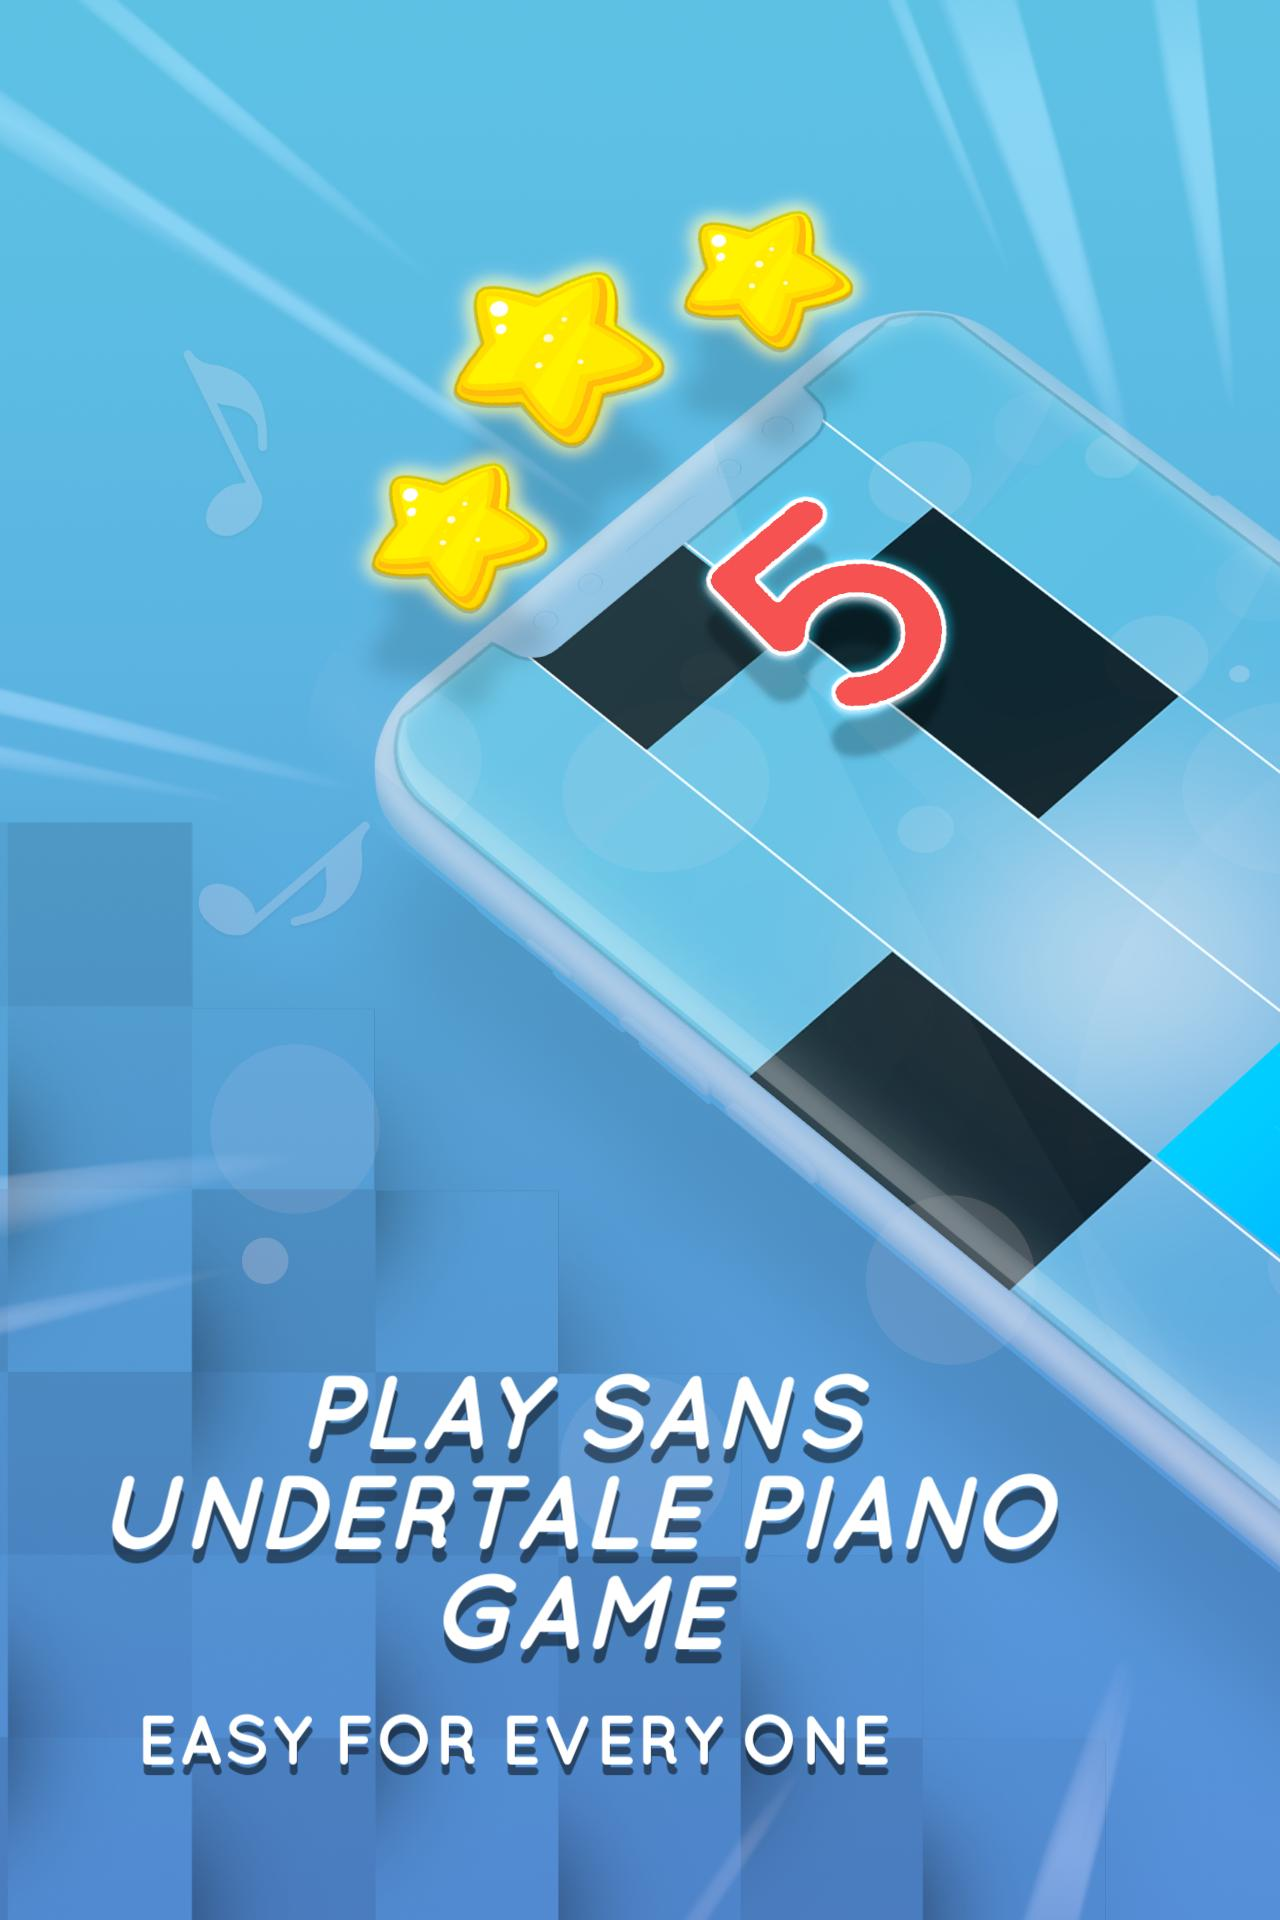 Sans Undertale - Megalovania Piano Tiles 2019 for Android - APK Download